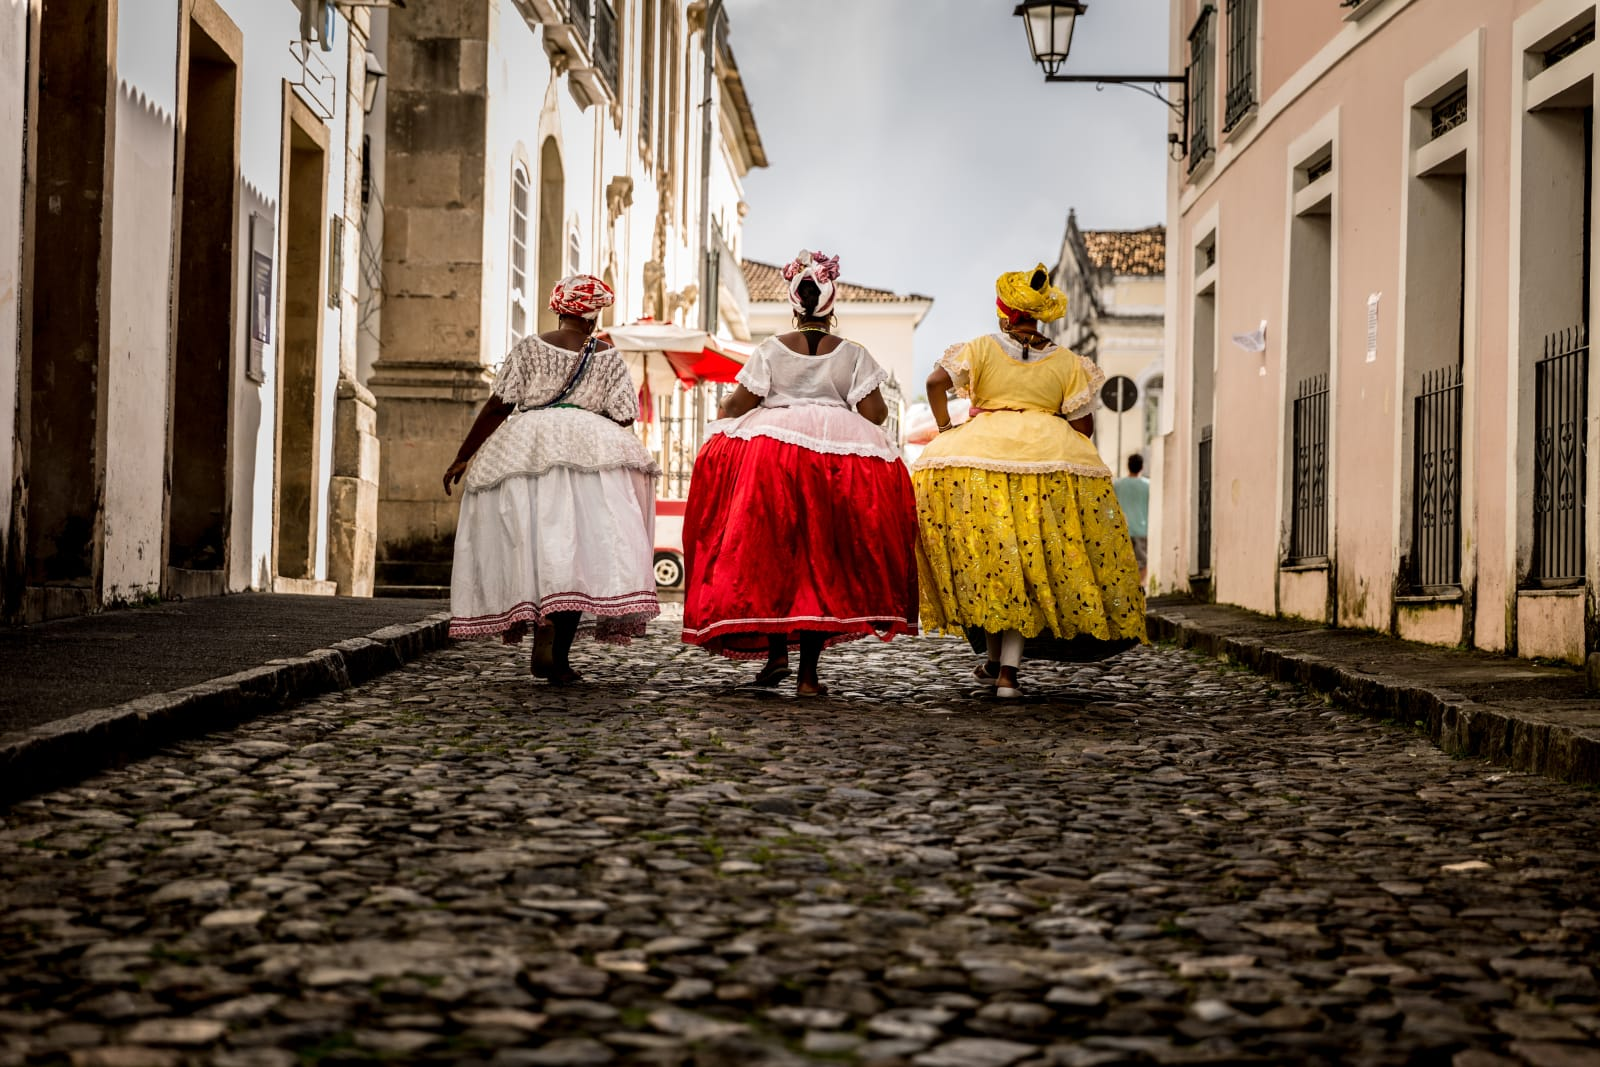 View of women in traditional outfits in Salvador, Bahia in Brazil